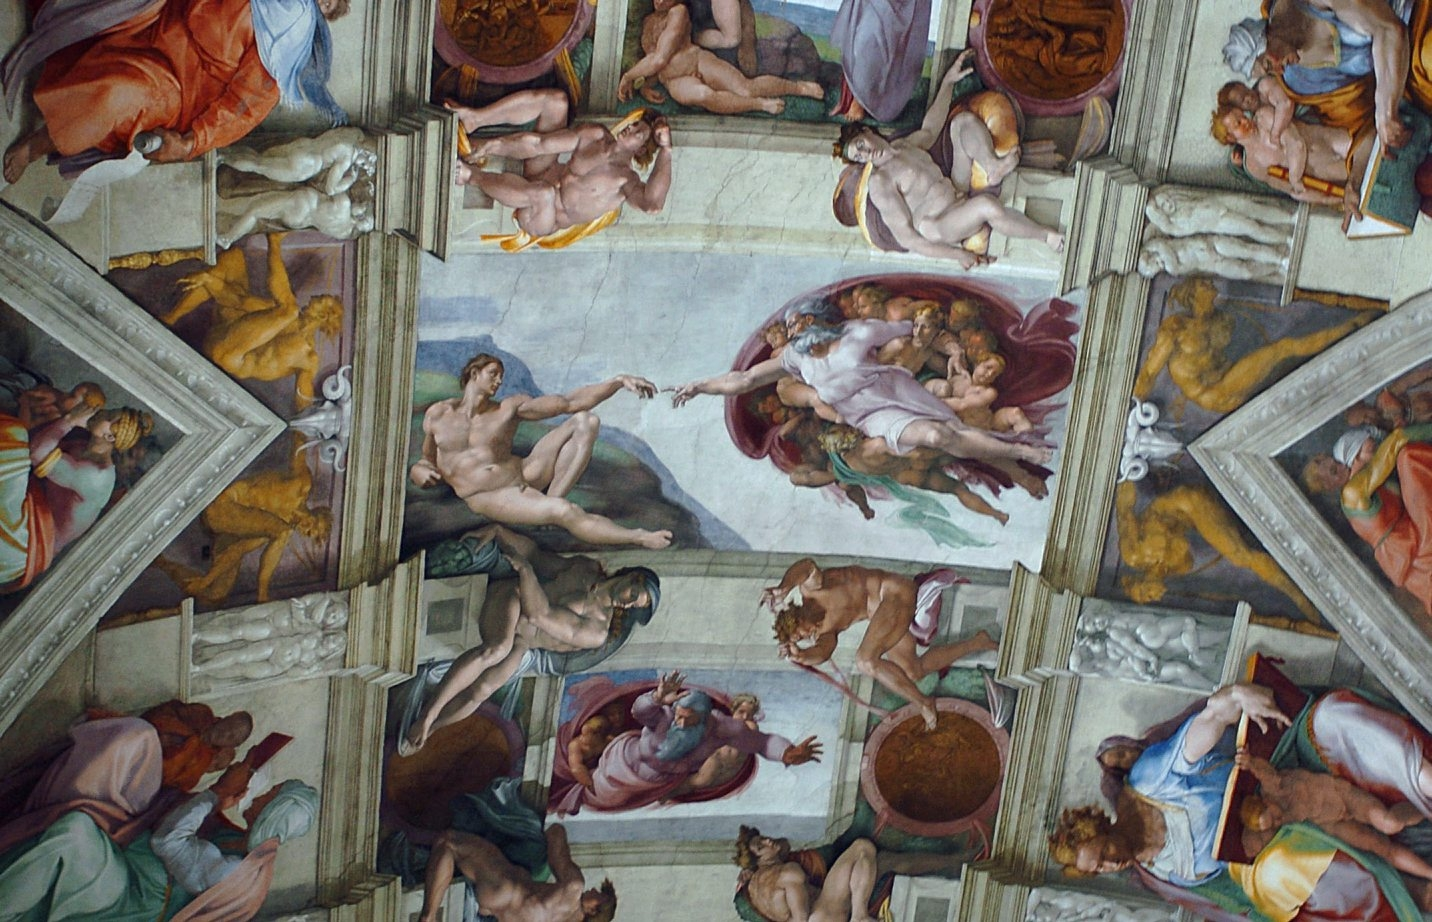 Miles J. Unger tells the story of Michelangelo through six of his greatest masterpieces including the ceiling of the Sistine Chapel, a part of which is shown above.